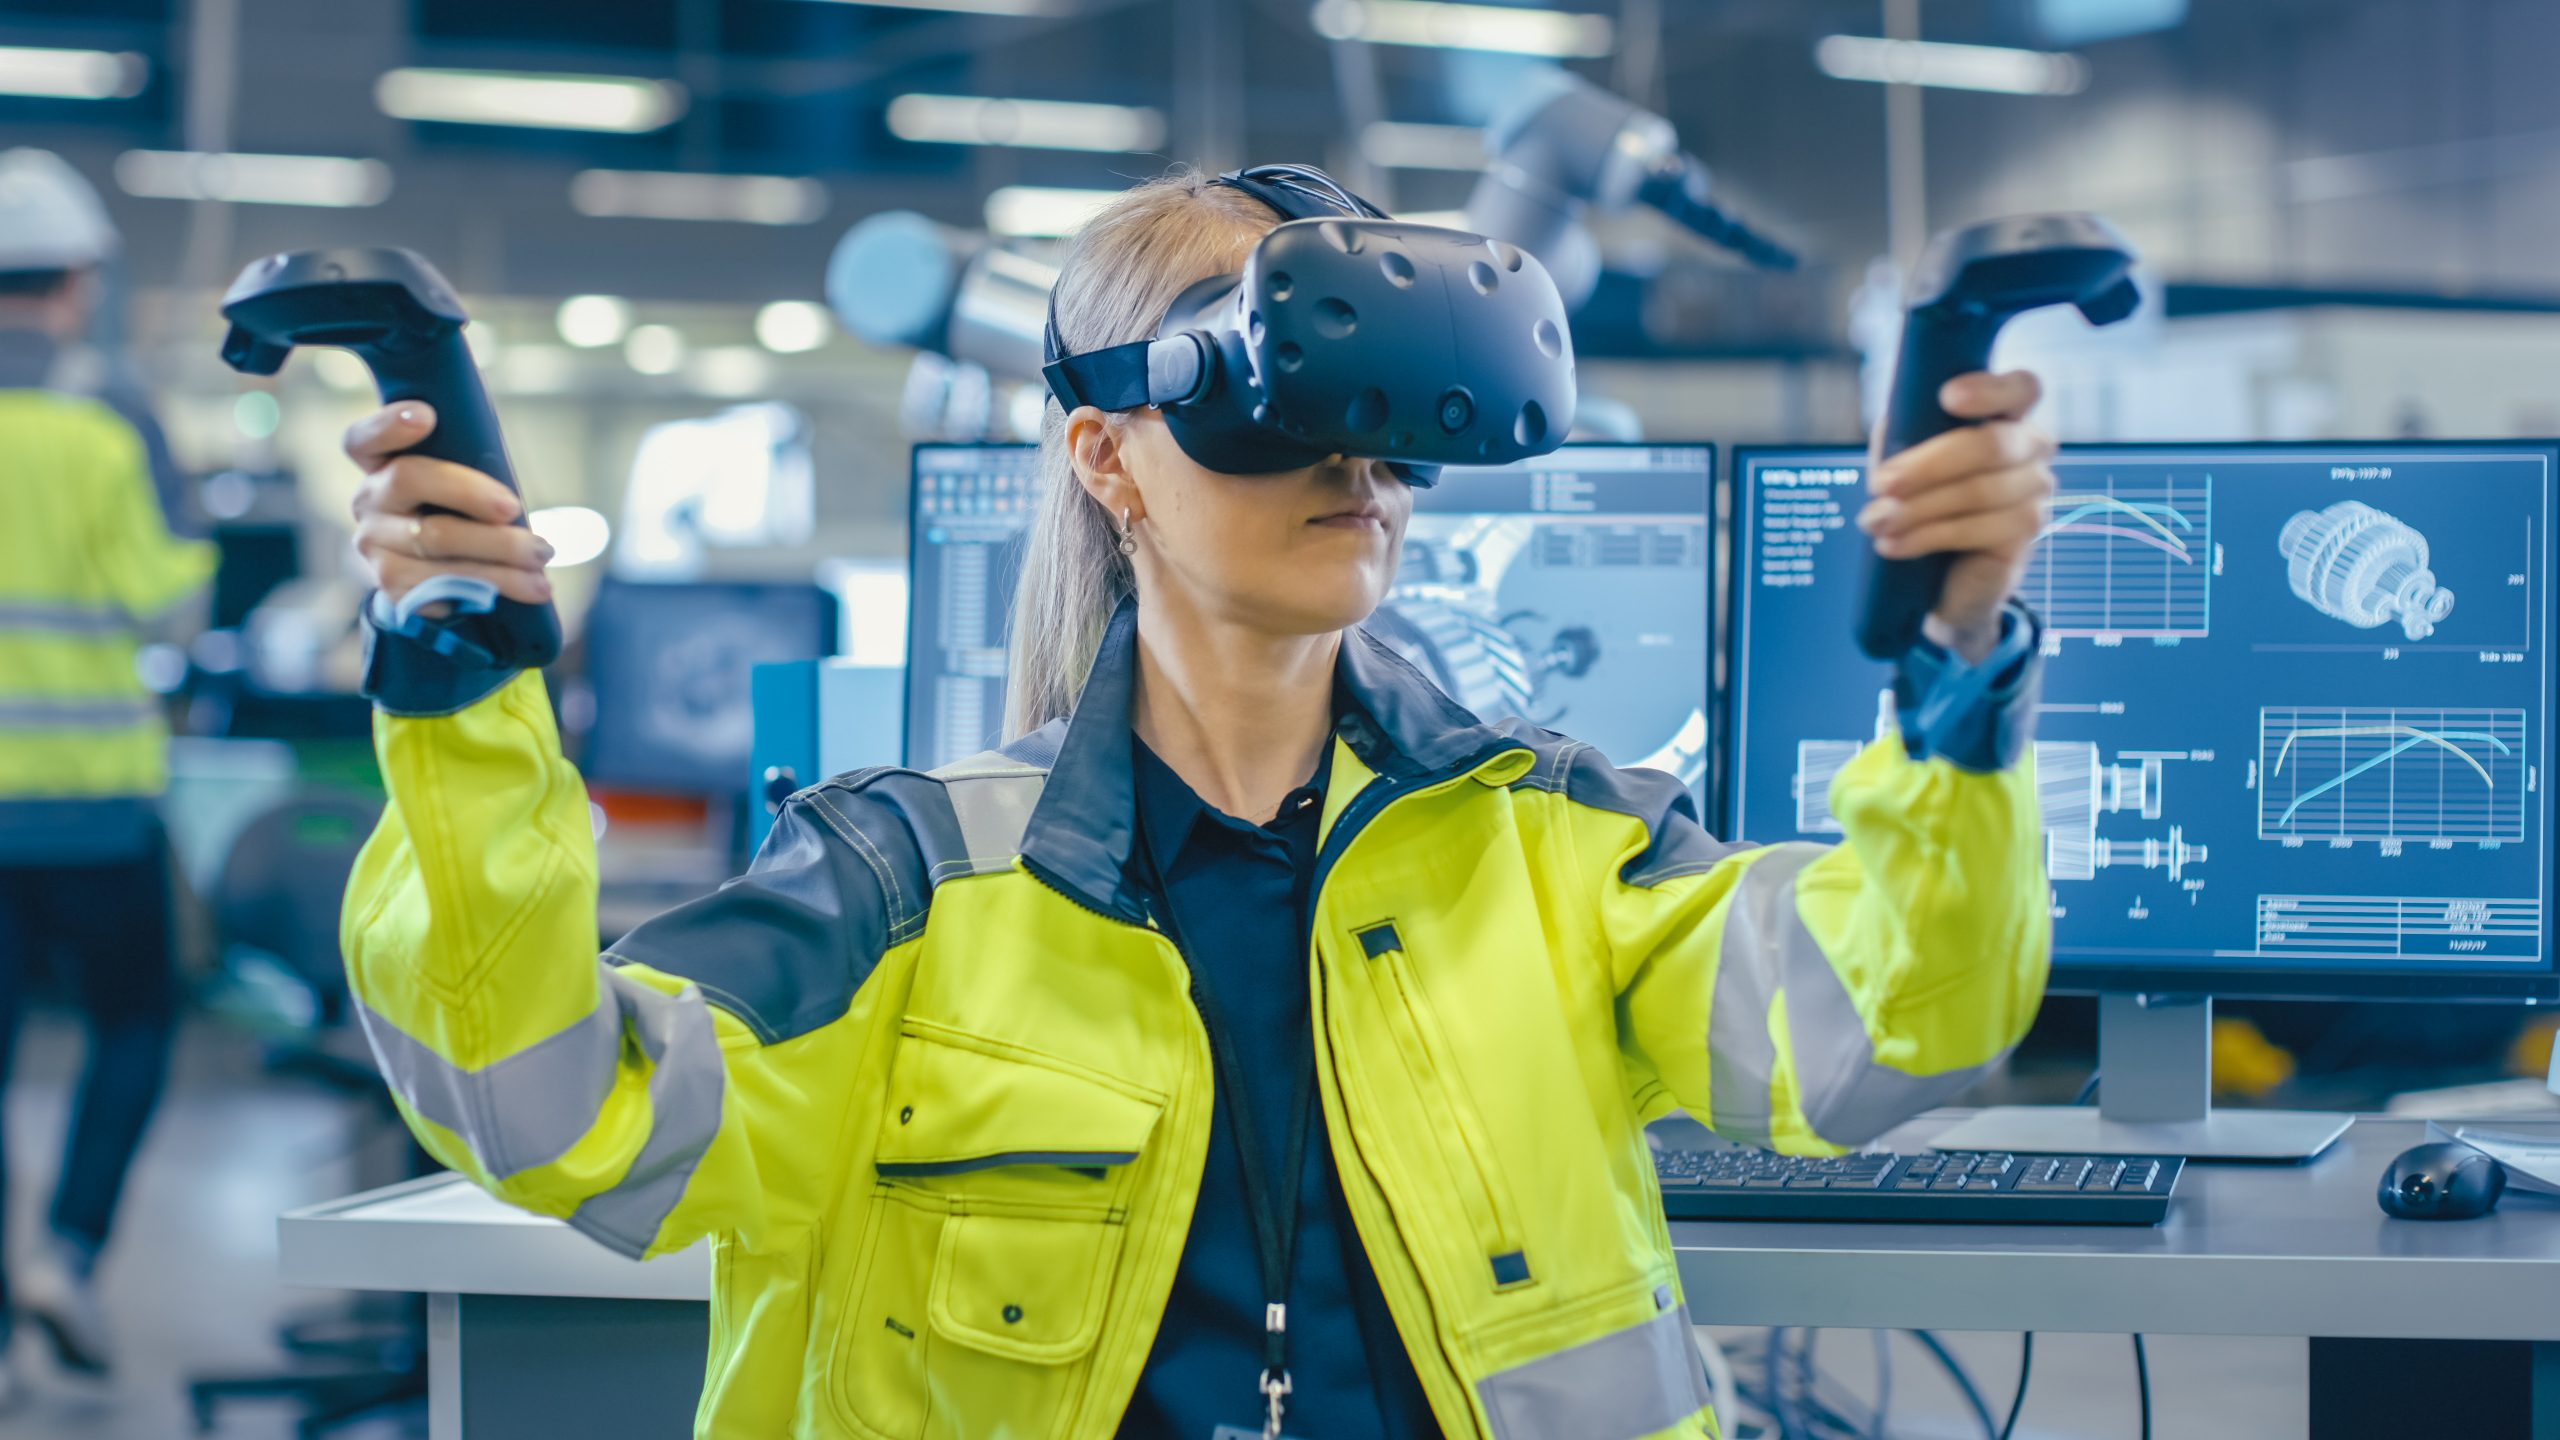 VR Meets HR: Enterprise Solutions for a Covid-world (and Beyond)